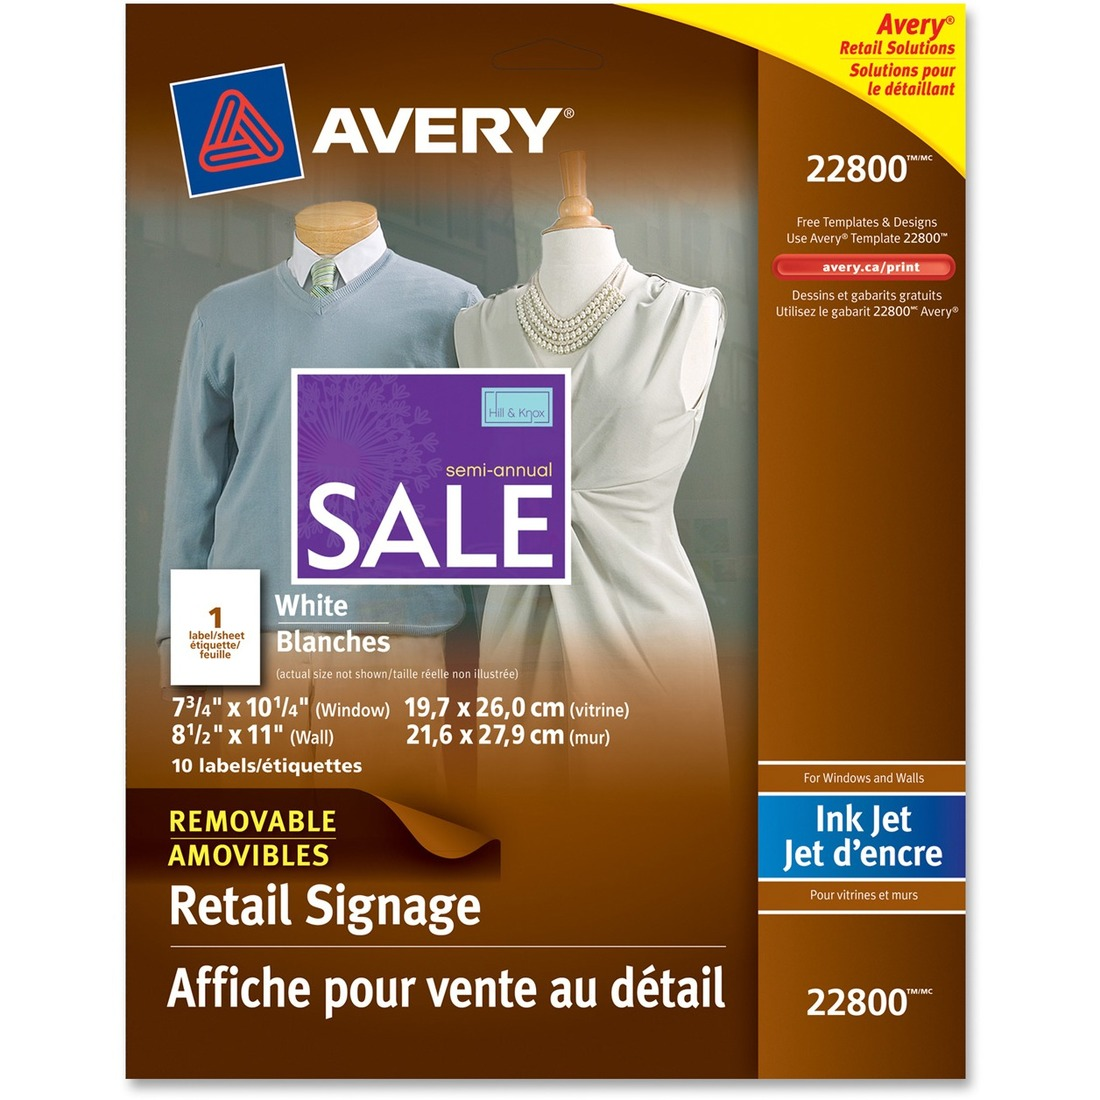 AVE 22800 Avery Retail or Store Display Film